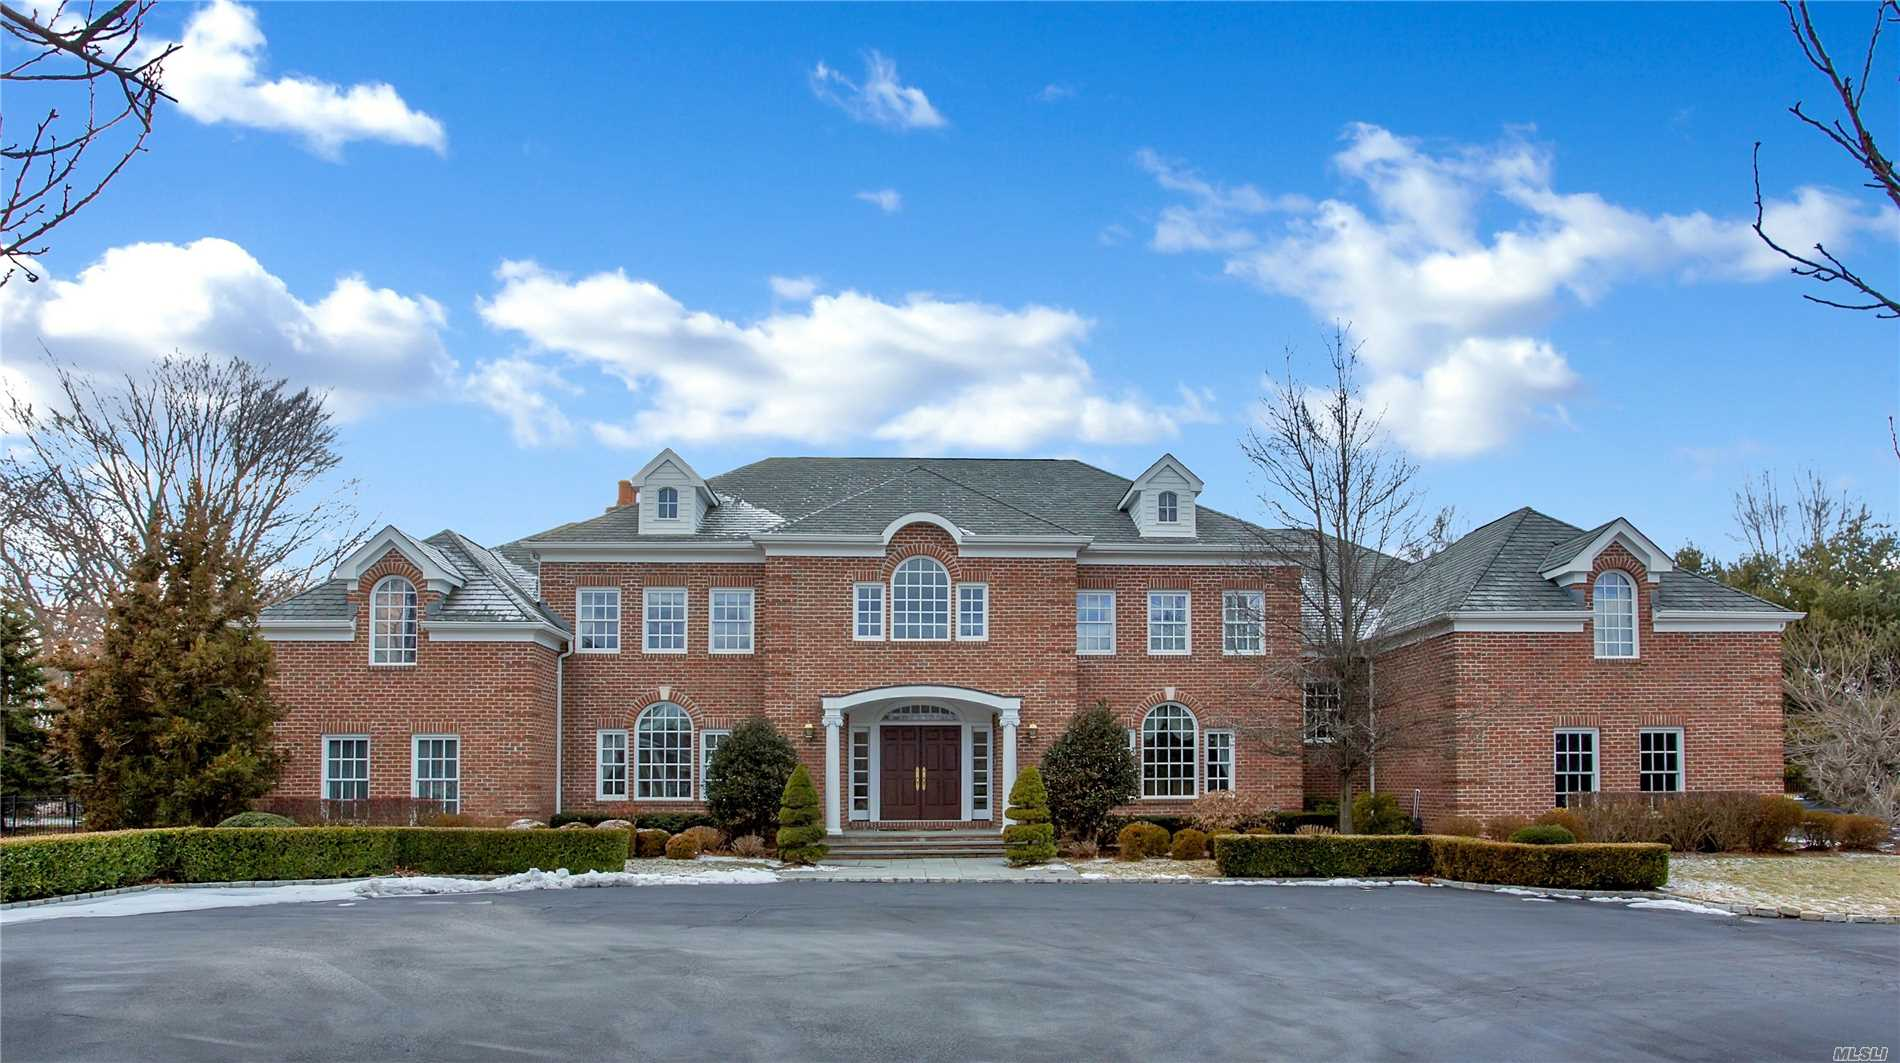 Built 2002 On 4 Magnificent Acres On One Of Old Westbury's Most Desirable Gated Cul-De-Sac's Sits This Spectacular Brick Georgian Manor Residence. This Stunning 7, 000 Sf. 5 Br 5.5 Bath Residence Offers Unparalleled Attention To Architectural Detail & Craftsmanship As Well As 2 Master Br Suites, 2-Story Eh, 3 Car Gar, Fin Bsmnt And Ig-Heated Gunite Pool & Spa. Jericho Sd